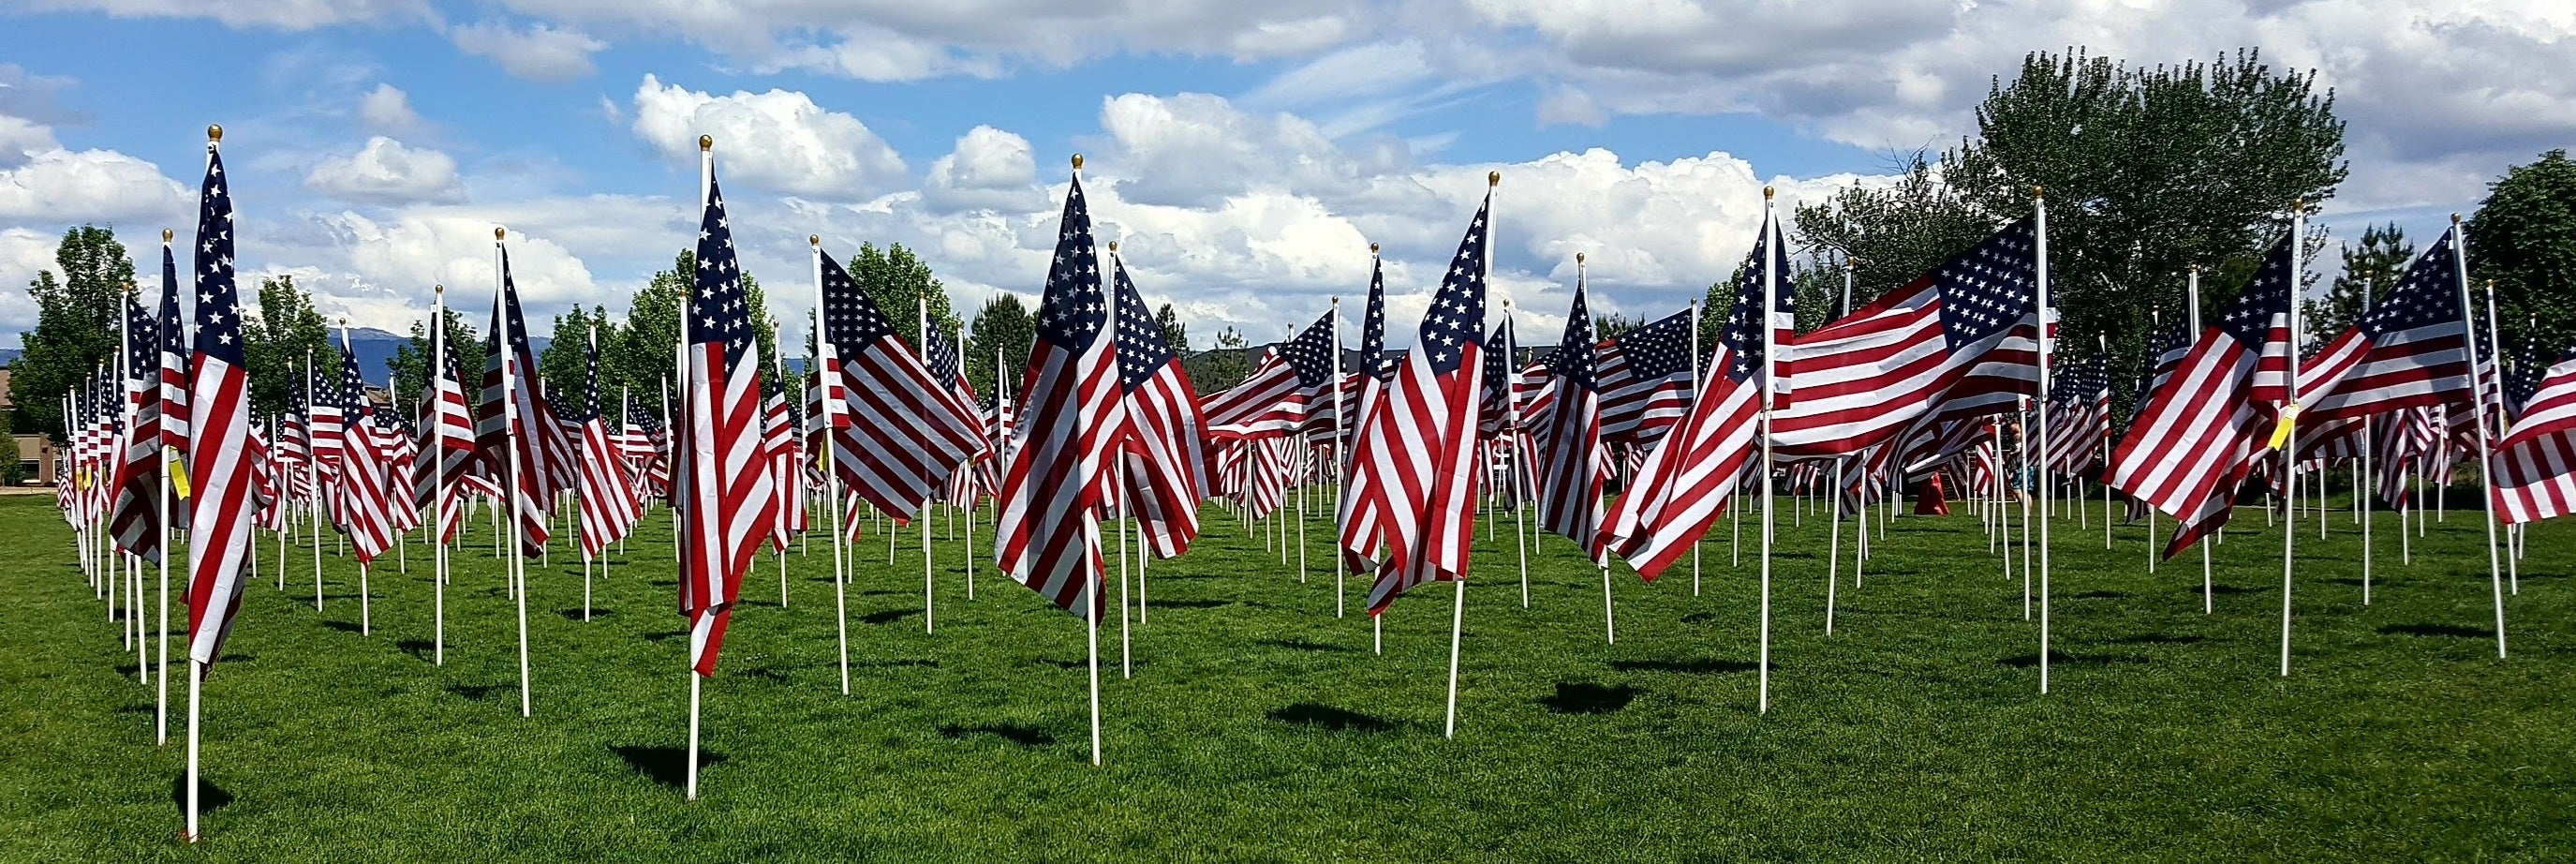 Flags Honoring Our Veterans, panorama